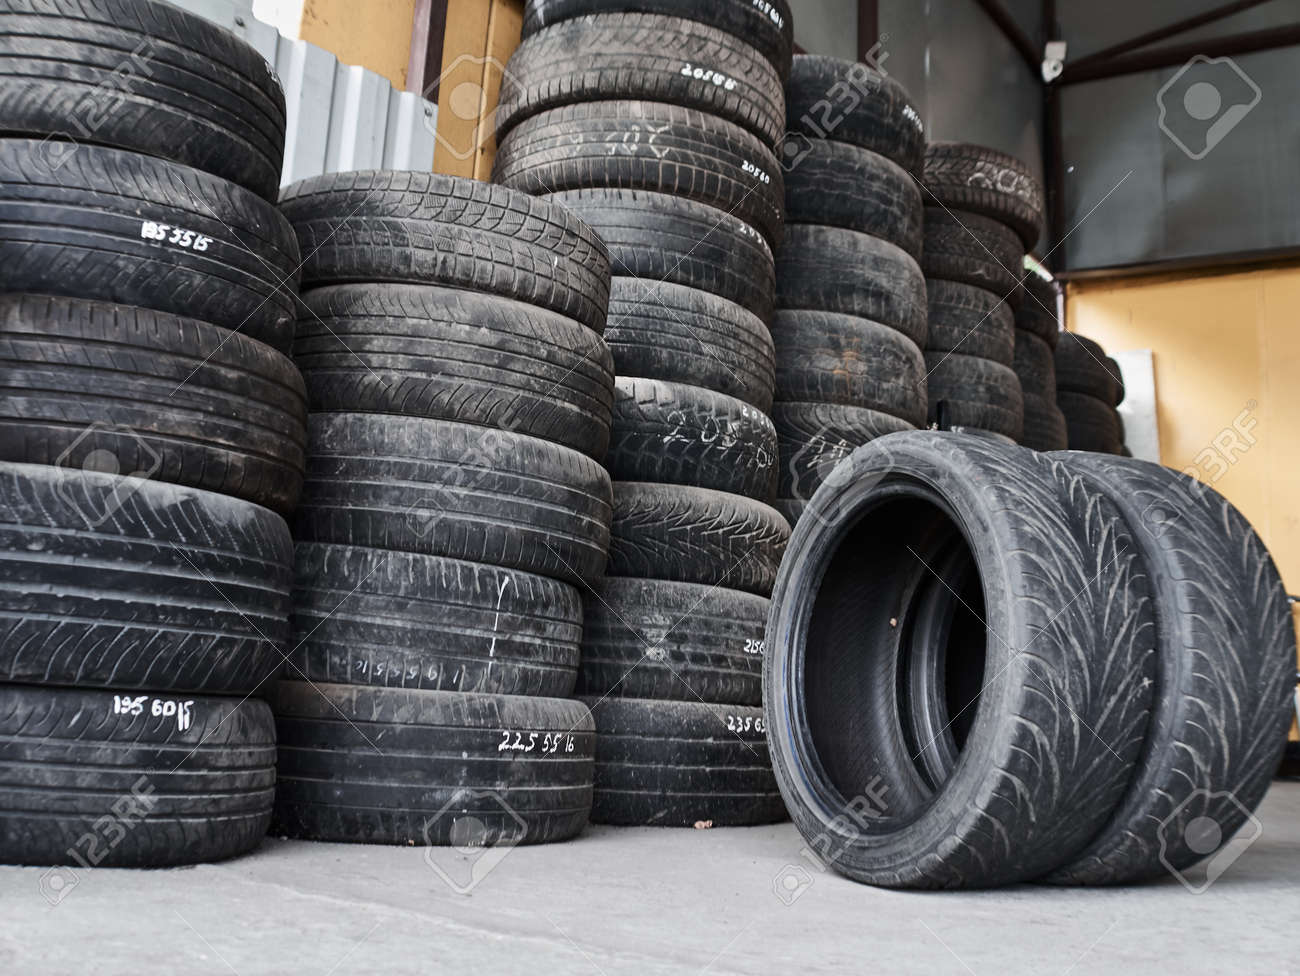 Used Car Tires >> Used Car Tires Stacked In Piles At Tire Fitting Service Wheels